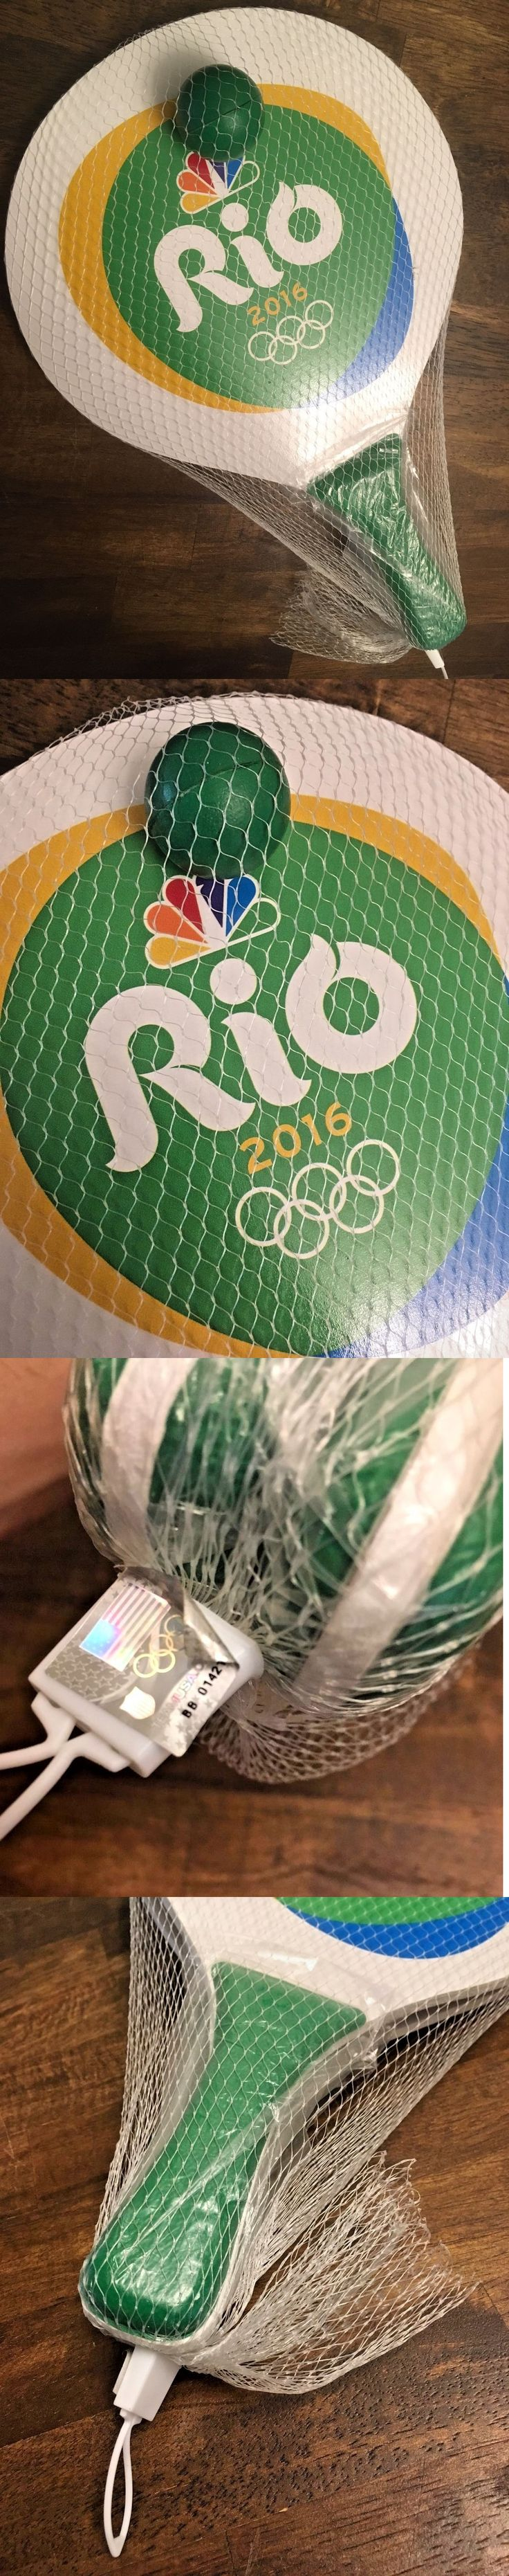 Olympic rings logo rio 2016 olympics logo designed by fred gelli - Paddles 36277 2016 Paddleball Rio Olympic Games Wood Paddle And Ball Game Brand New Cbs